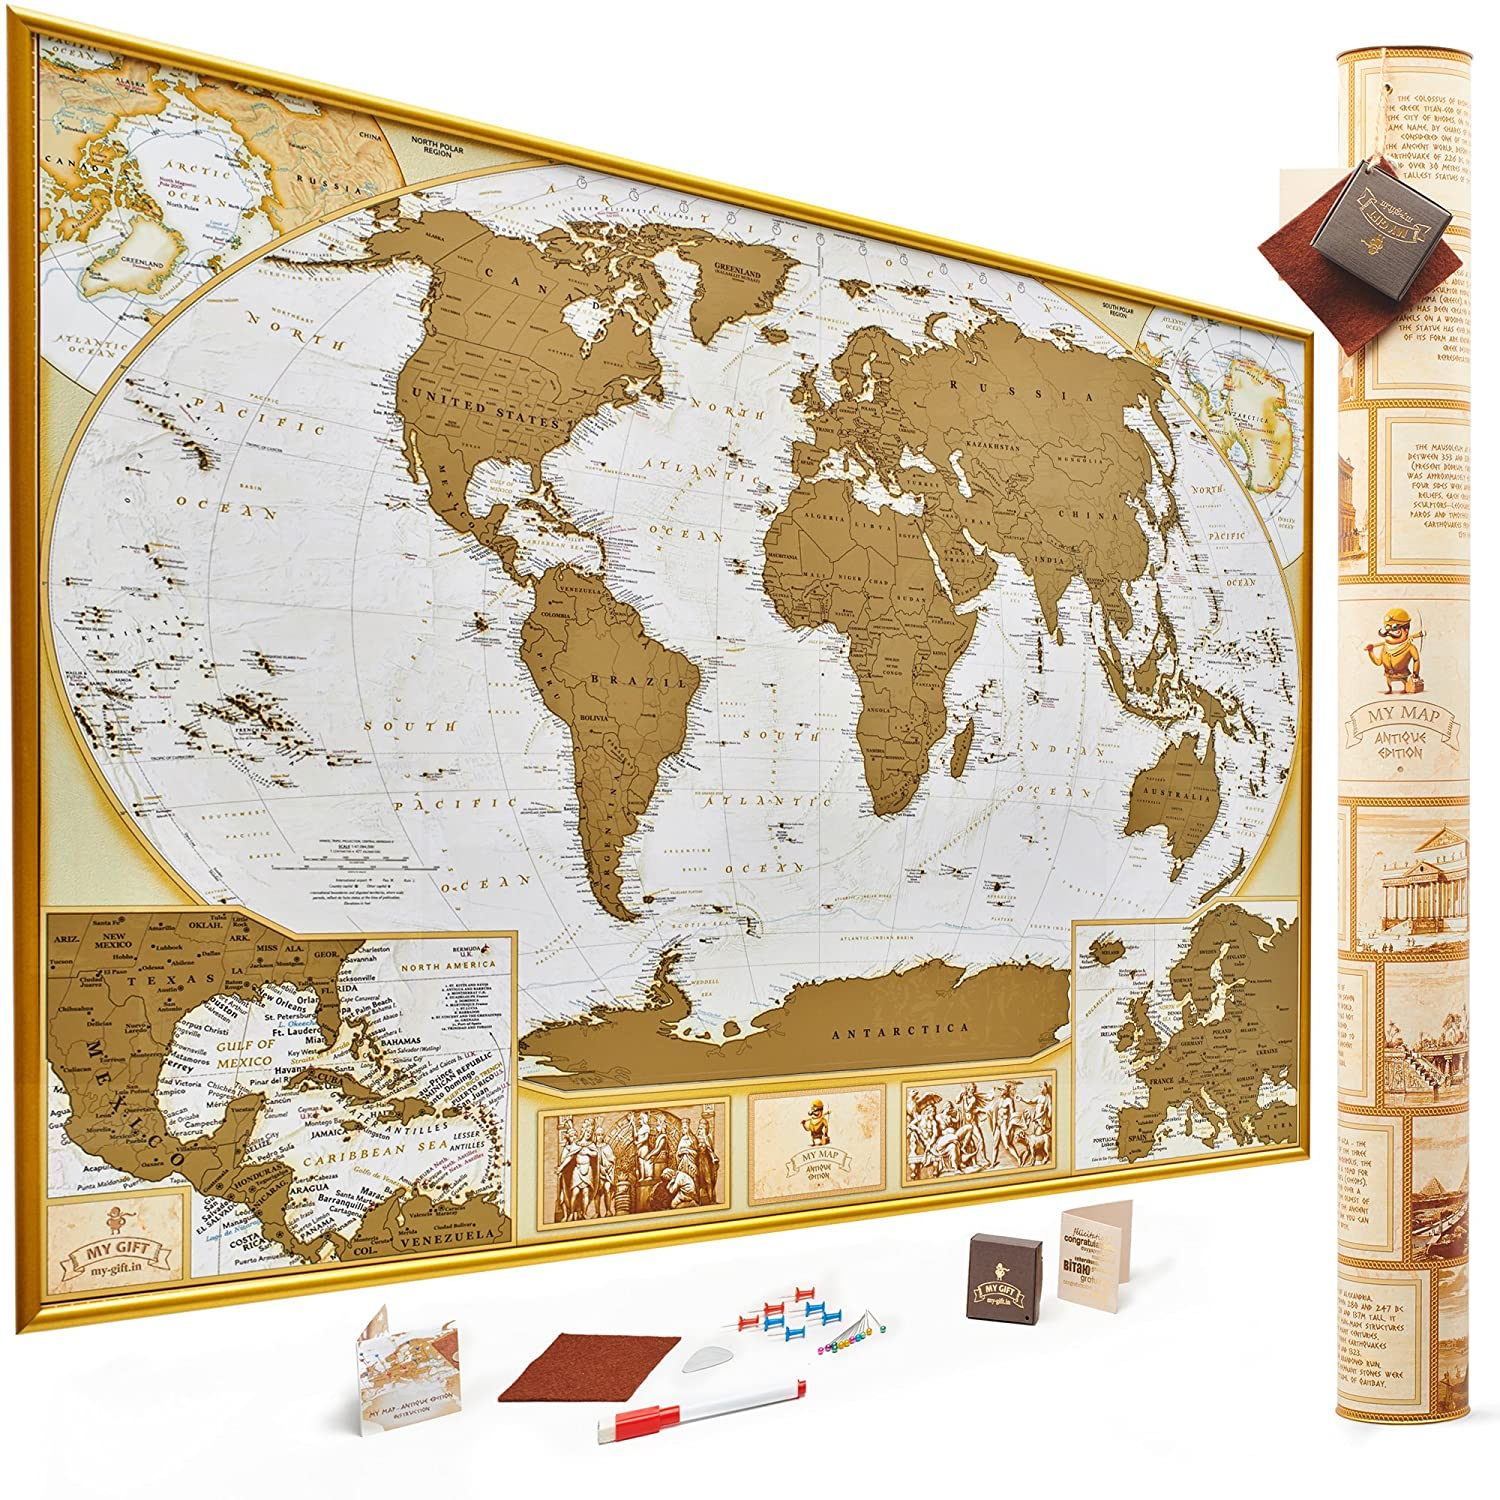 MyMap Gold Scratch Off World Map Wall Poster with US States, 35x25 Inches, Includes Pins, Buttons and Scratcher, Glossy Finish, Black with Vibrant Colors My New Lands FBA_LE